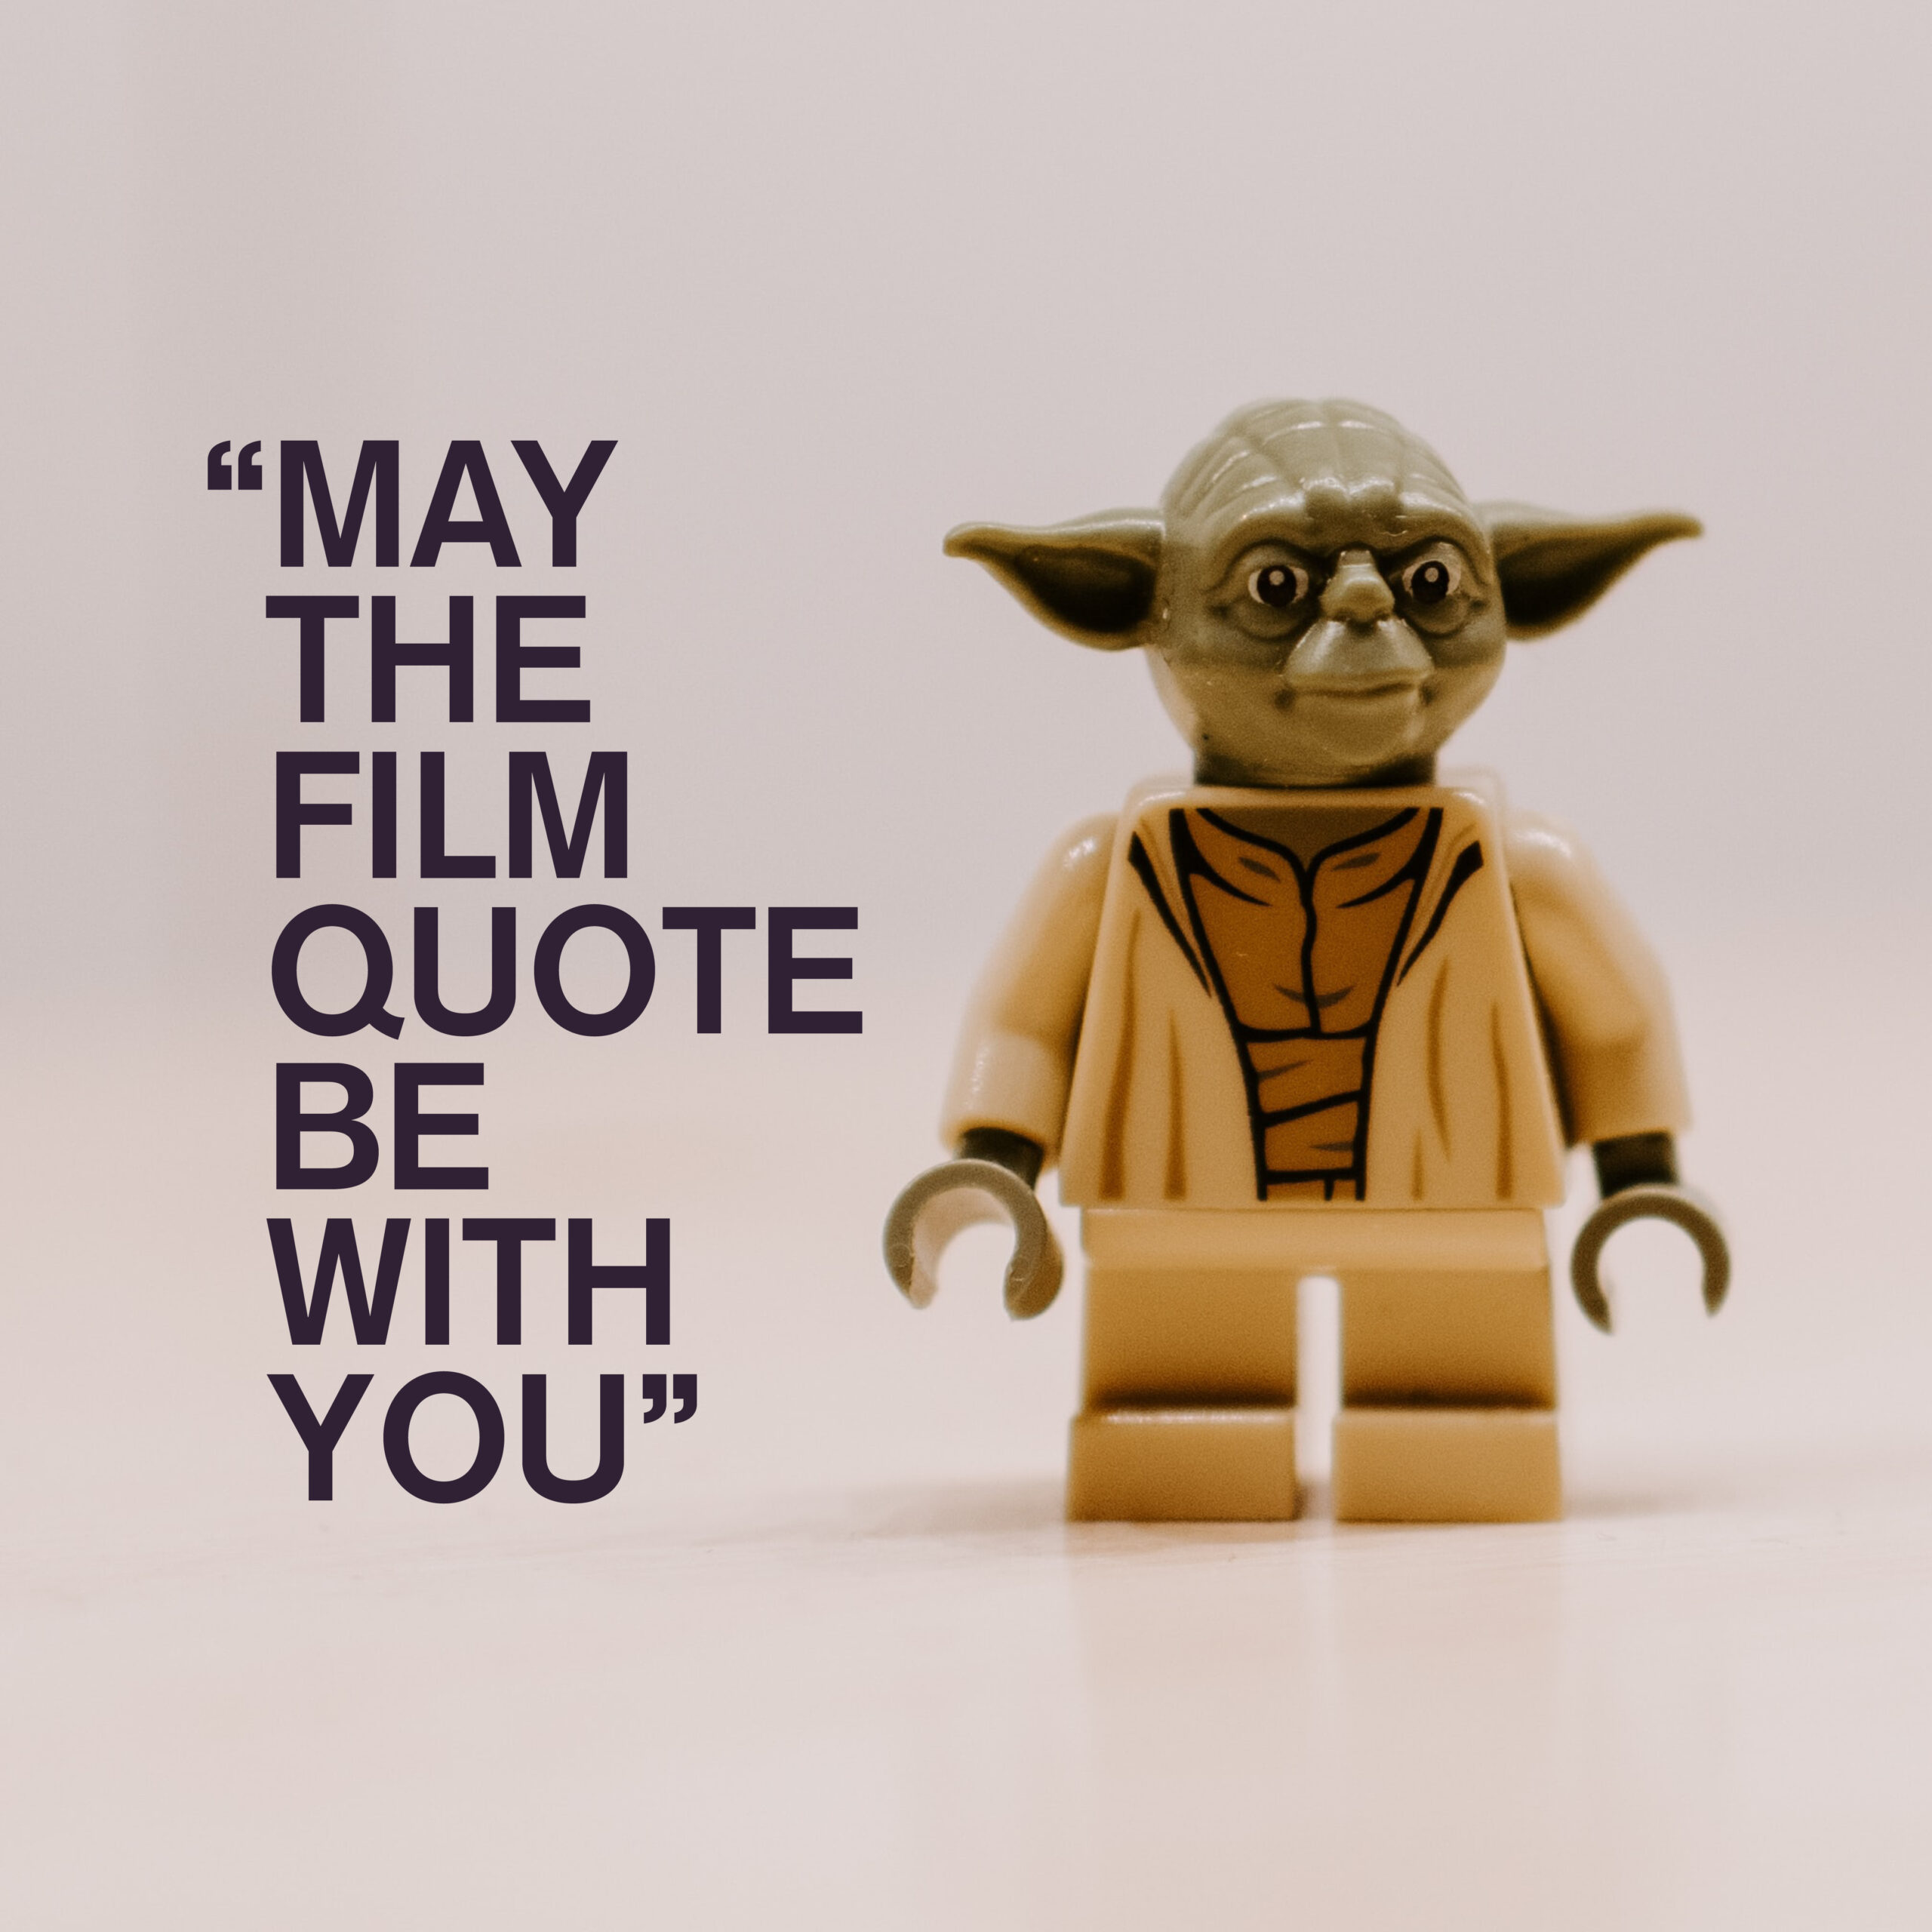 Film quotes for Breaking The Tranquillity of Solitude - May the Film Quote be with you.